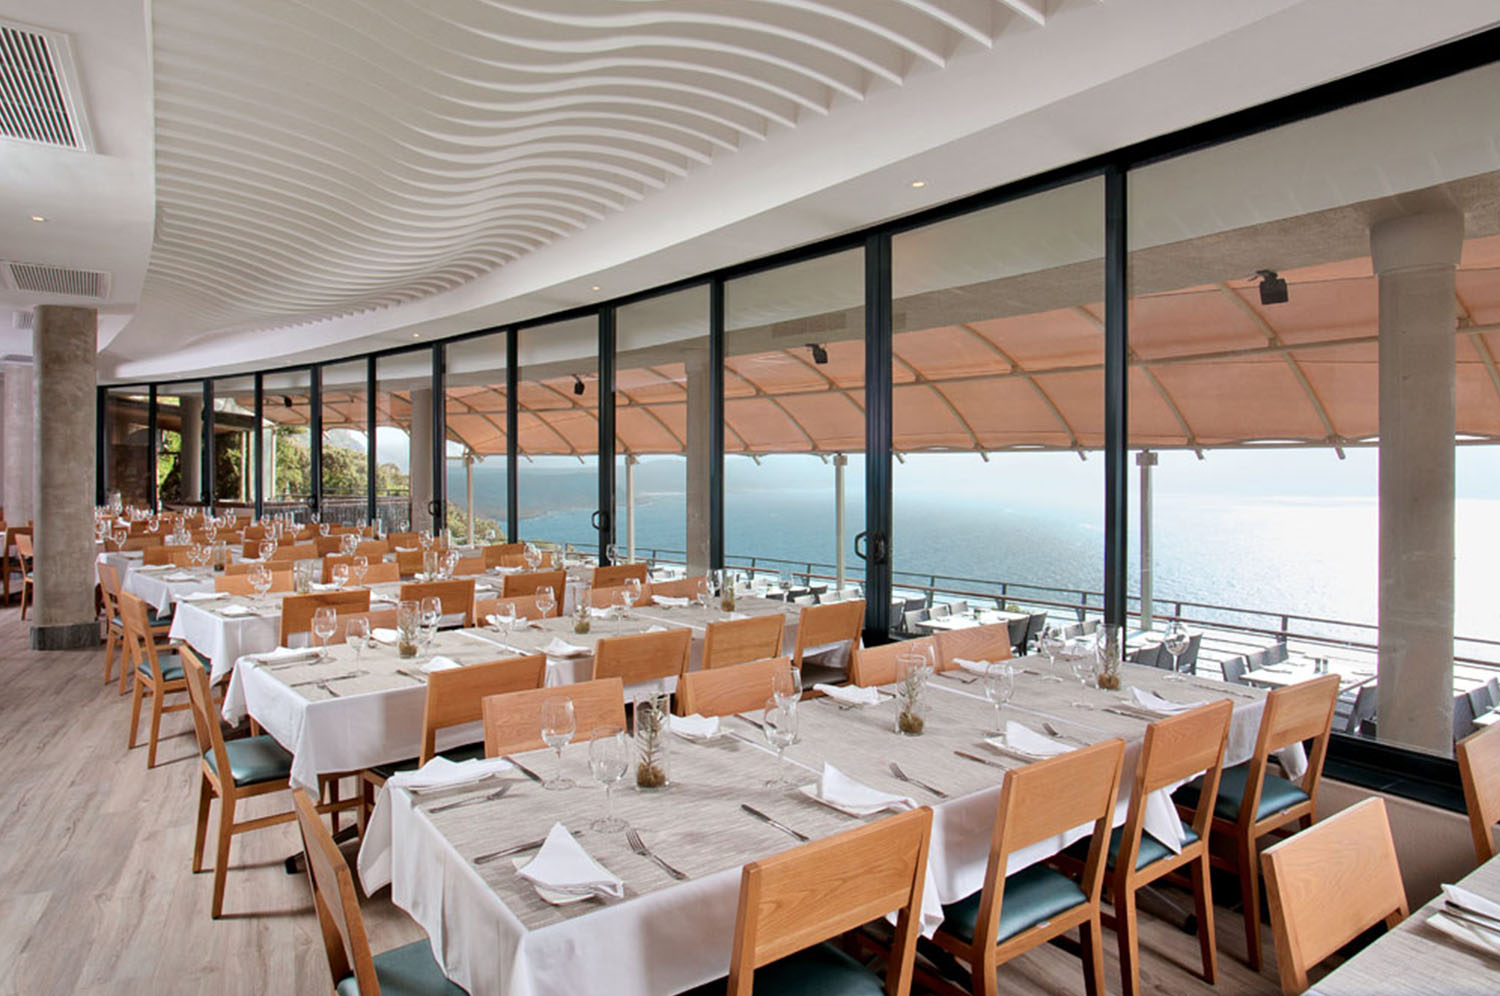 Two Oceans Restaurant, Cape Town, South Africa